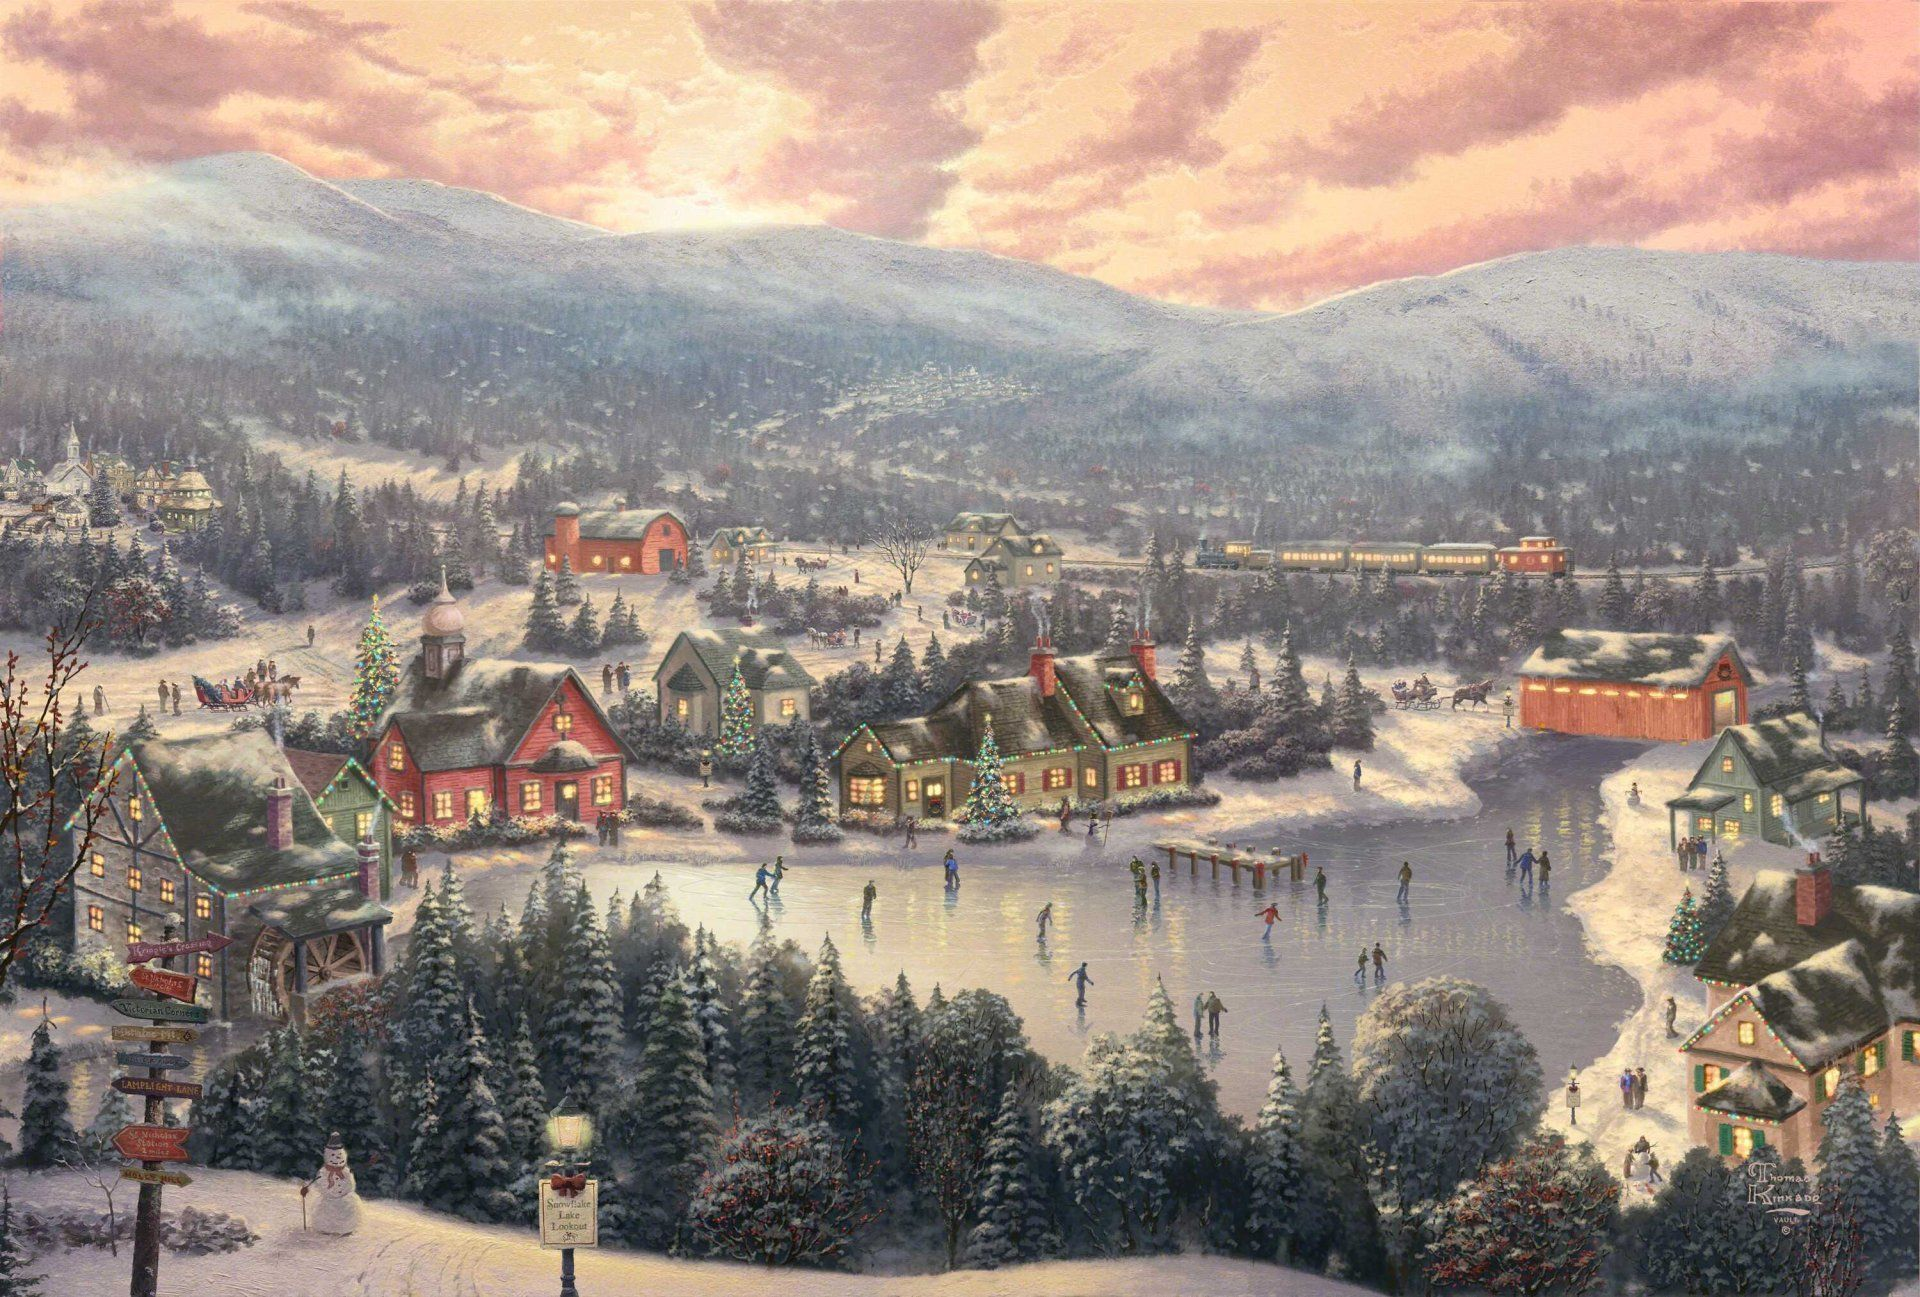 Sunset on snowflake lake thomas kinkade painting painting thomas thomas kinkade fabulous town town winter lake roller holiday christmas new year spruce snowman train bridge mill mountain forest sunset hd wallpaper voltagebd Gallery